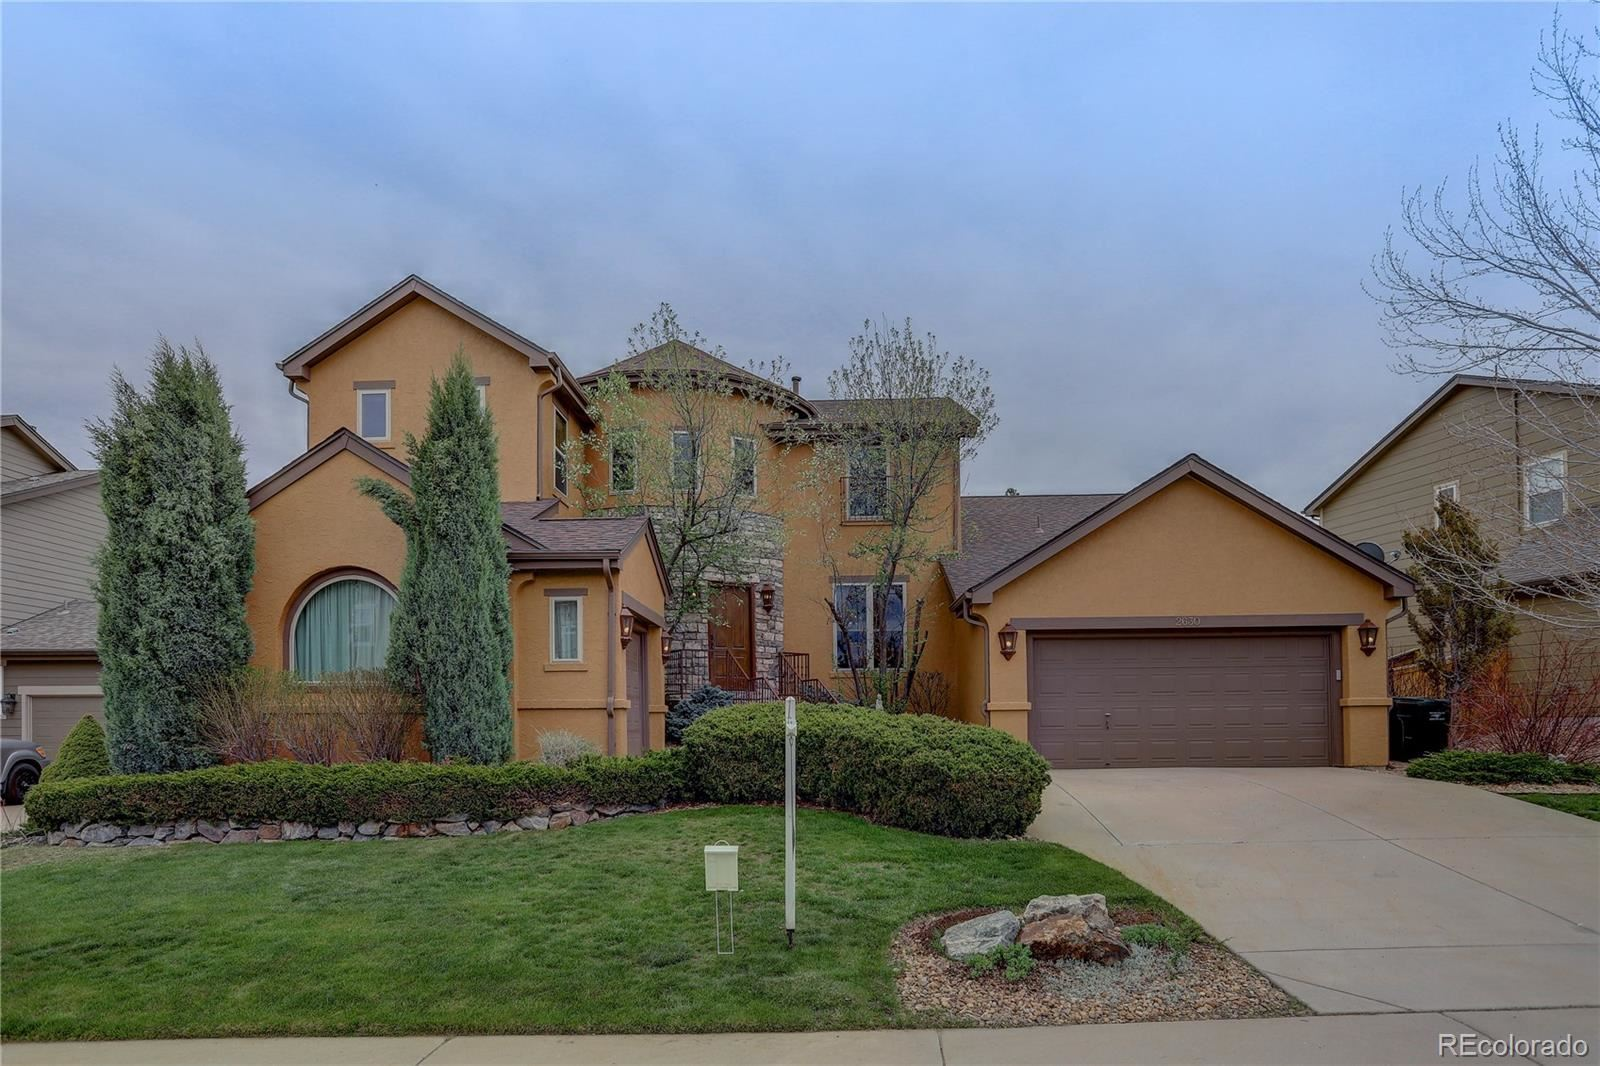 2630 Timberchase Trail, Highlands Ranch, CO 80126 - #: 2948226